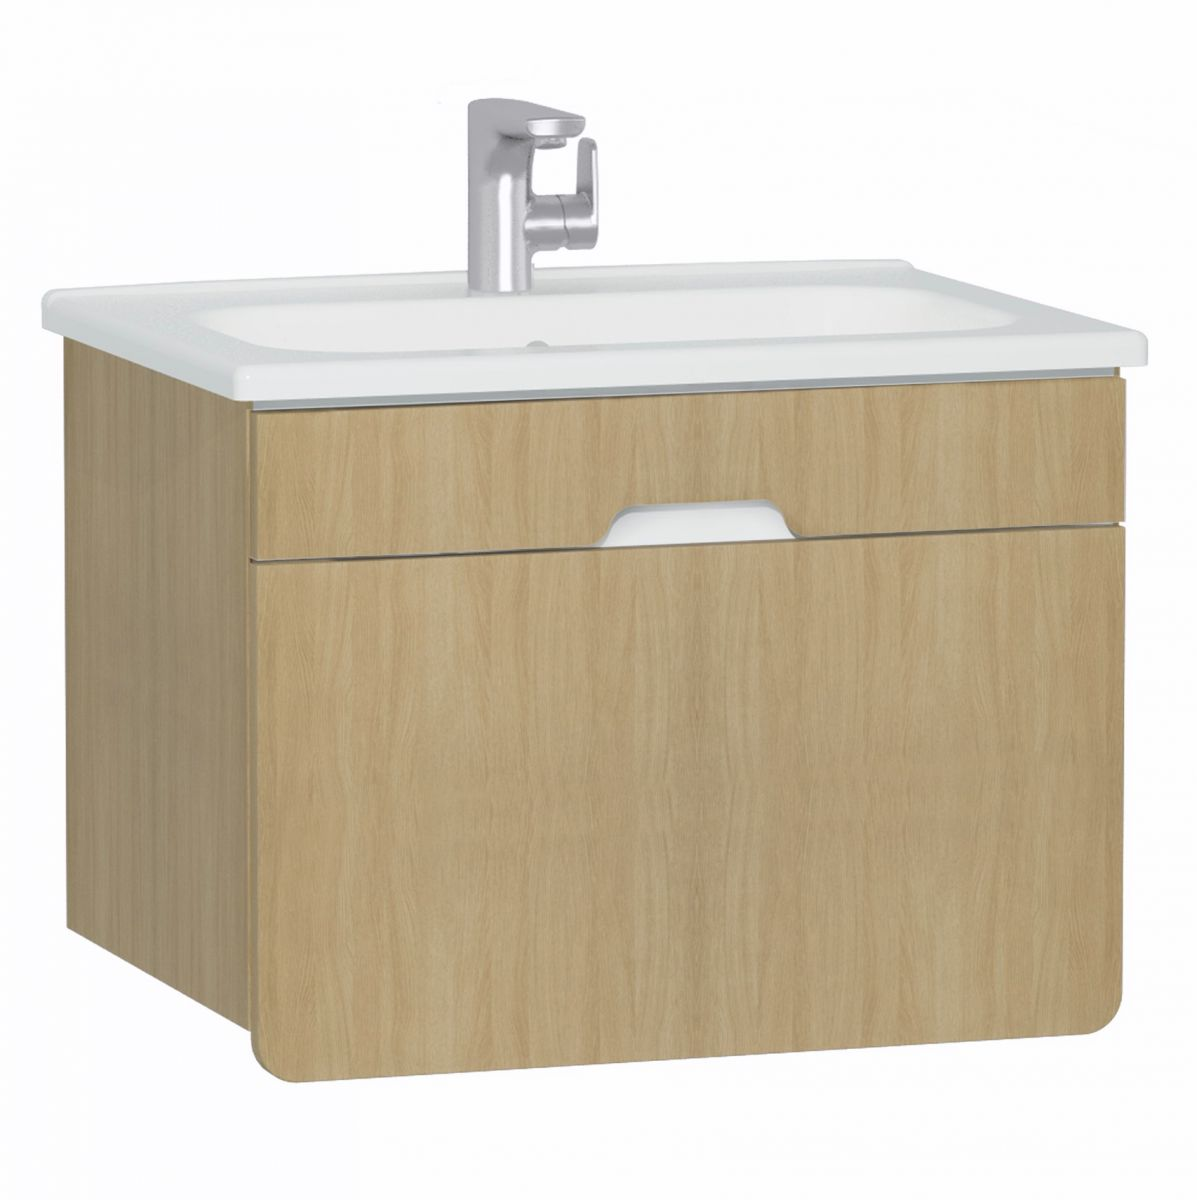 D-Light 700mm Single Drawer Wall Hung Unit & Basin - blueskybathrooms